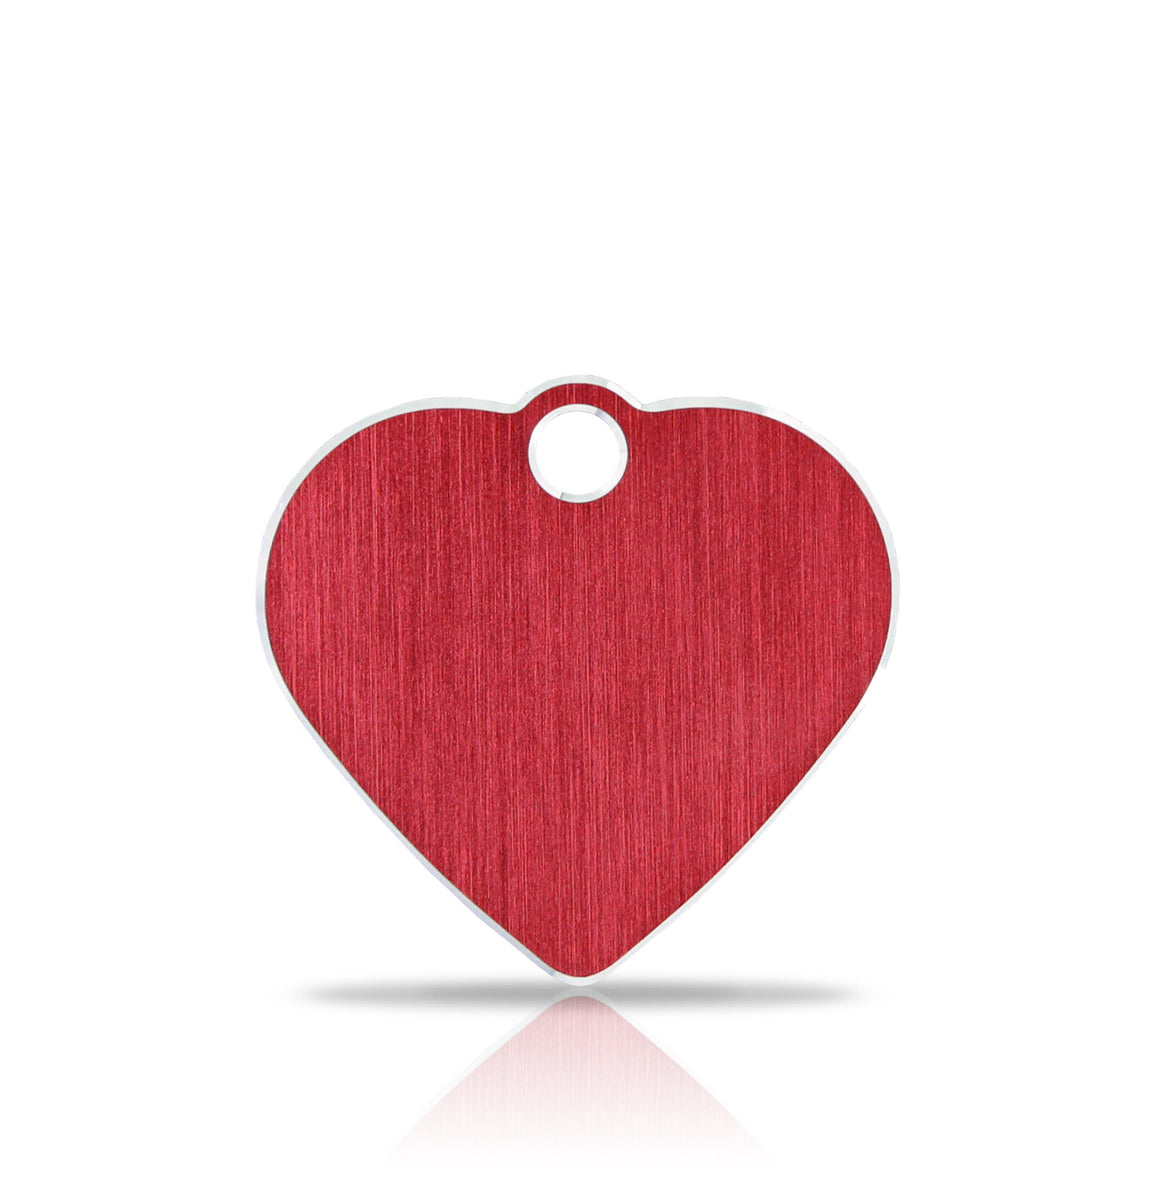 TaggIT Hi-Line Aluminium Red Small Heart iMarc Pet Tag